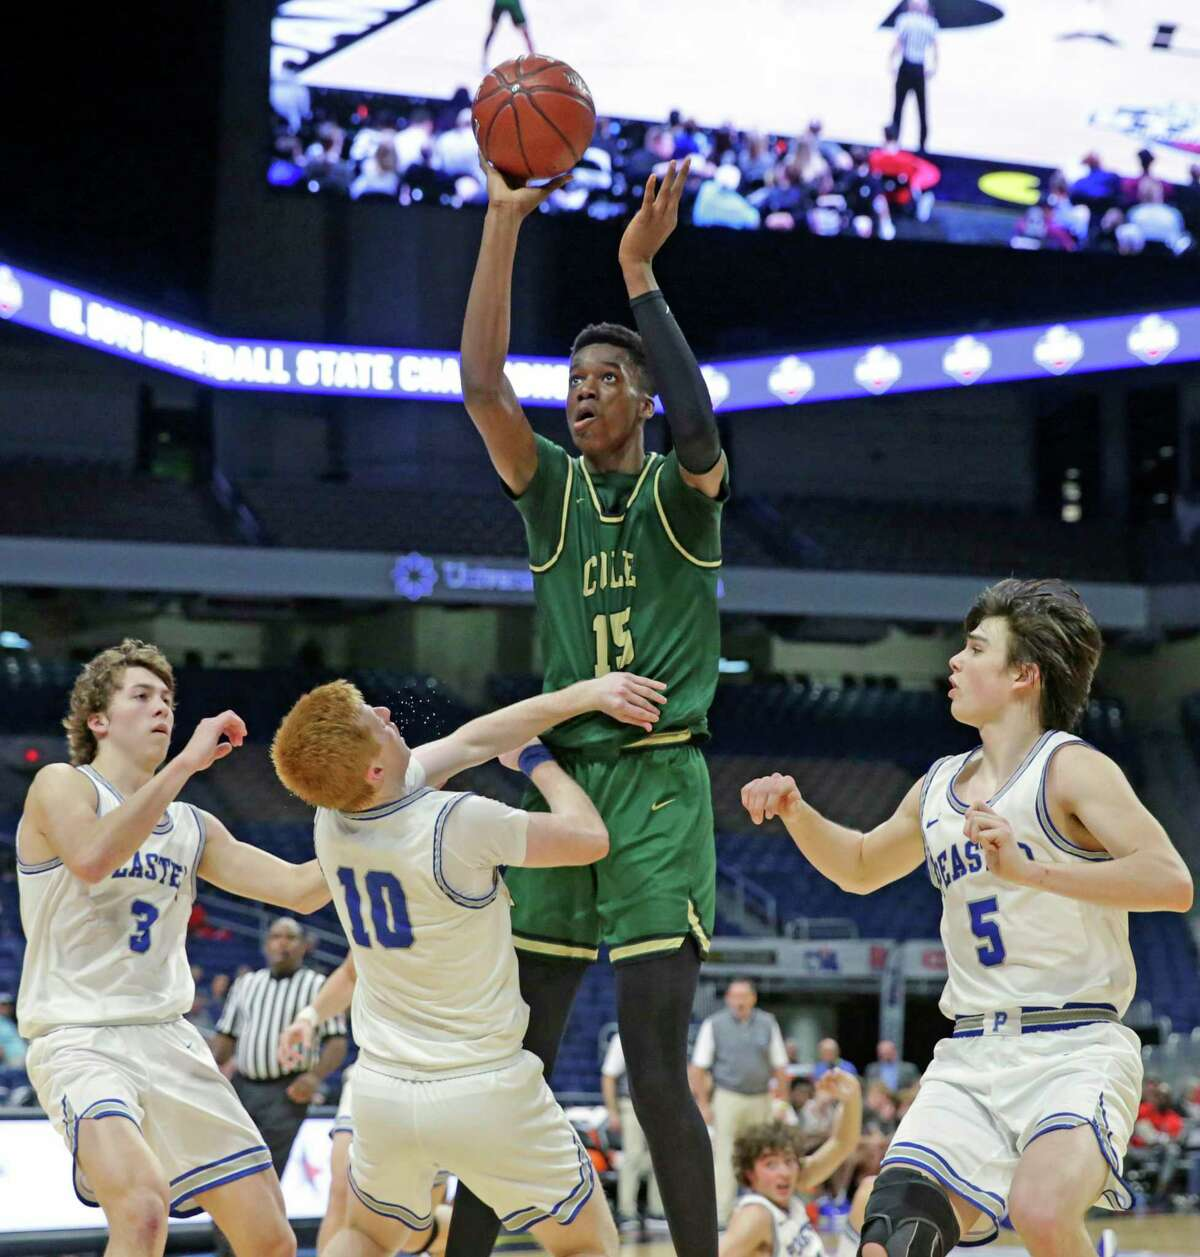 Vince Iwuchukwu gets off a jumper in a crowd during the class 3A state semifinal boys basketball game between Cole and Peaster at the Alamodome on Feb. 12, 2020.